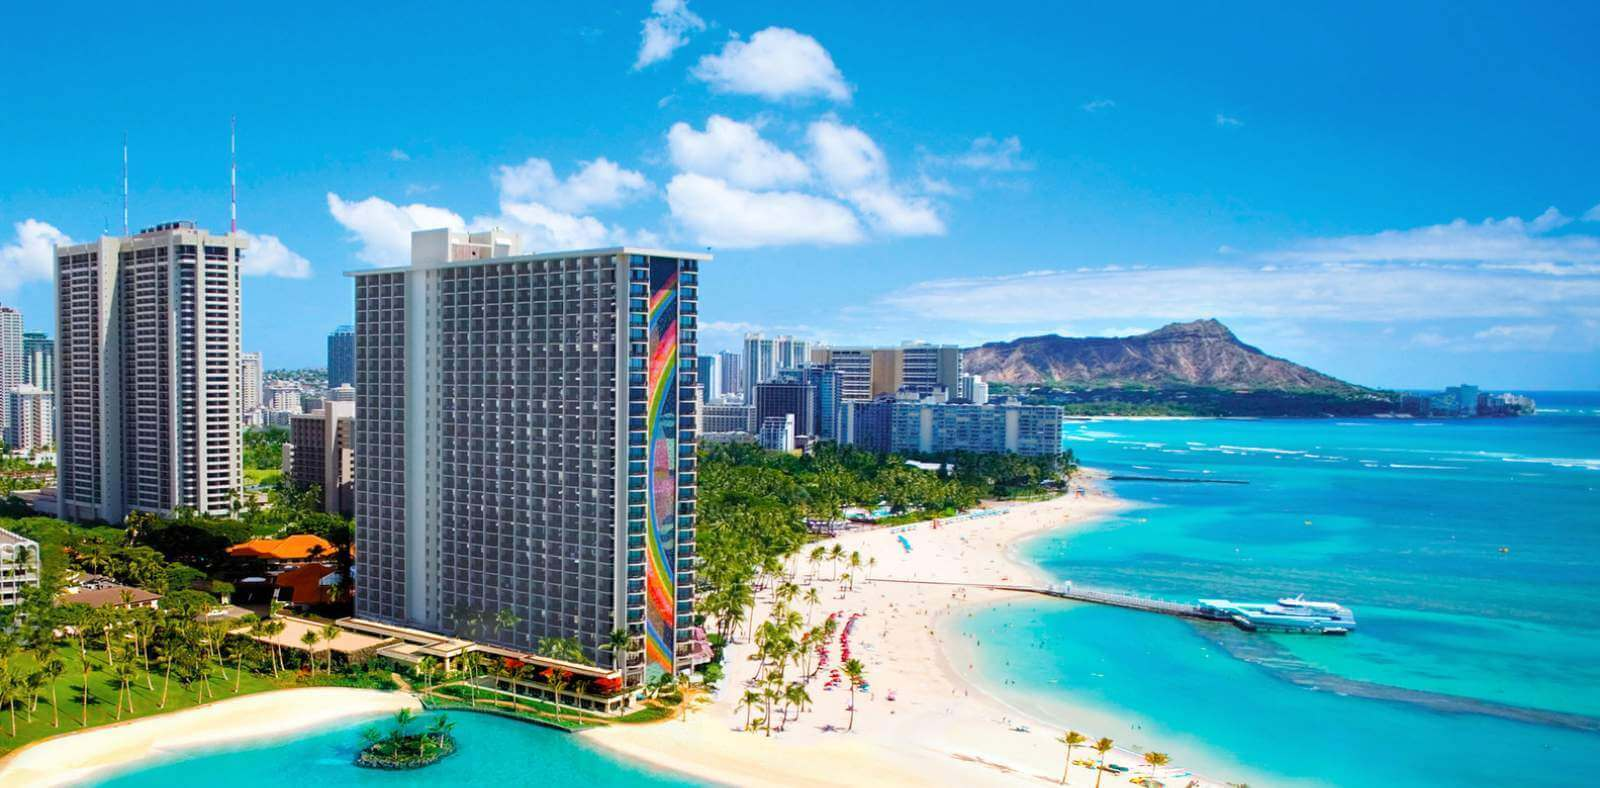 Hilton Hawaiian Village Waikiki Beach - Solo Travel and Singles Vacations